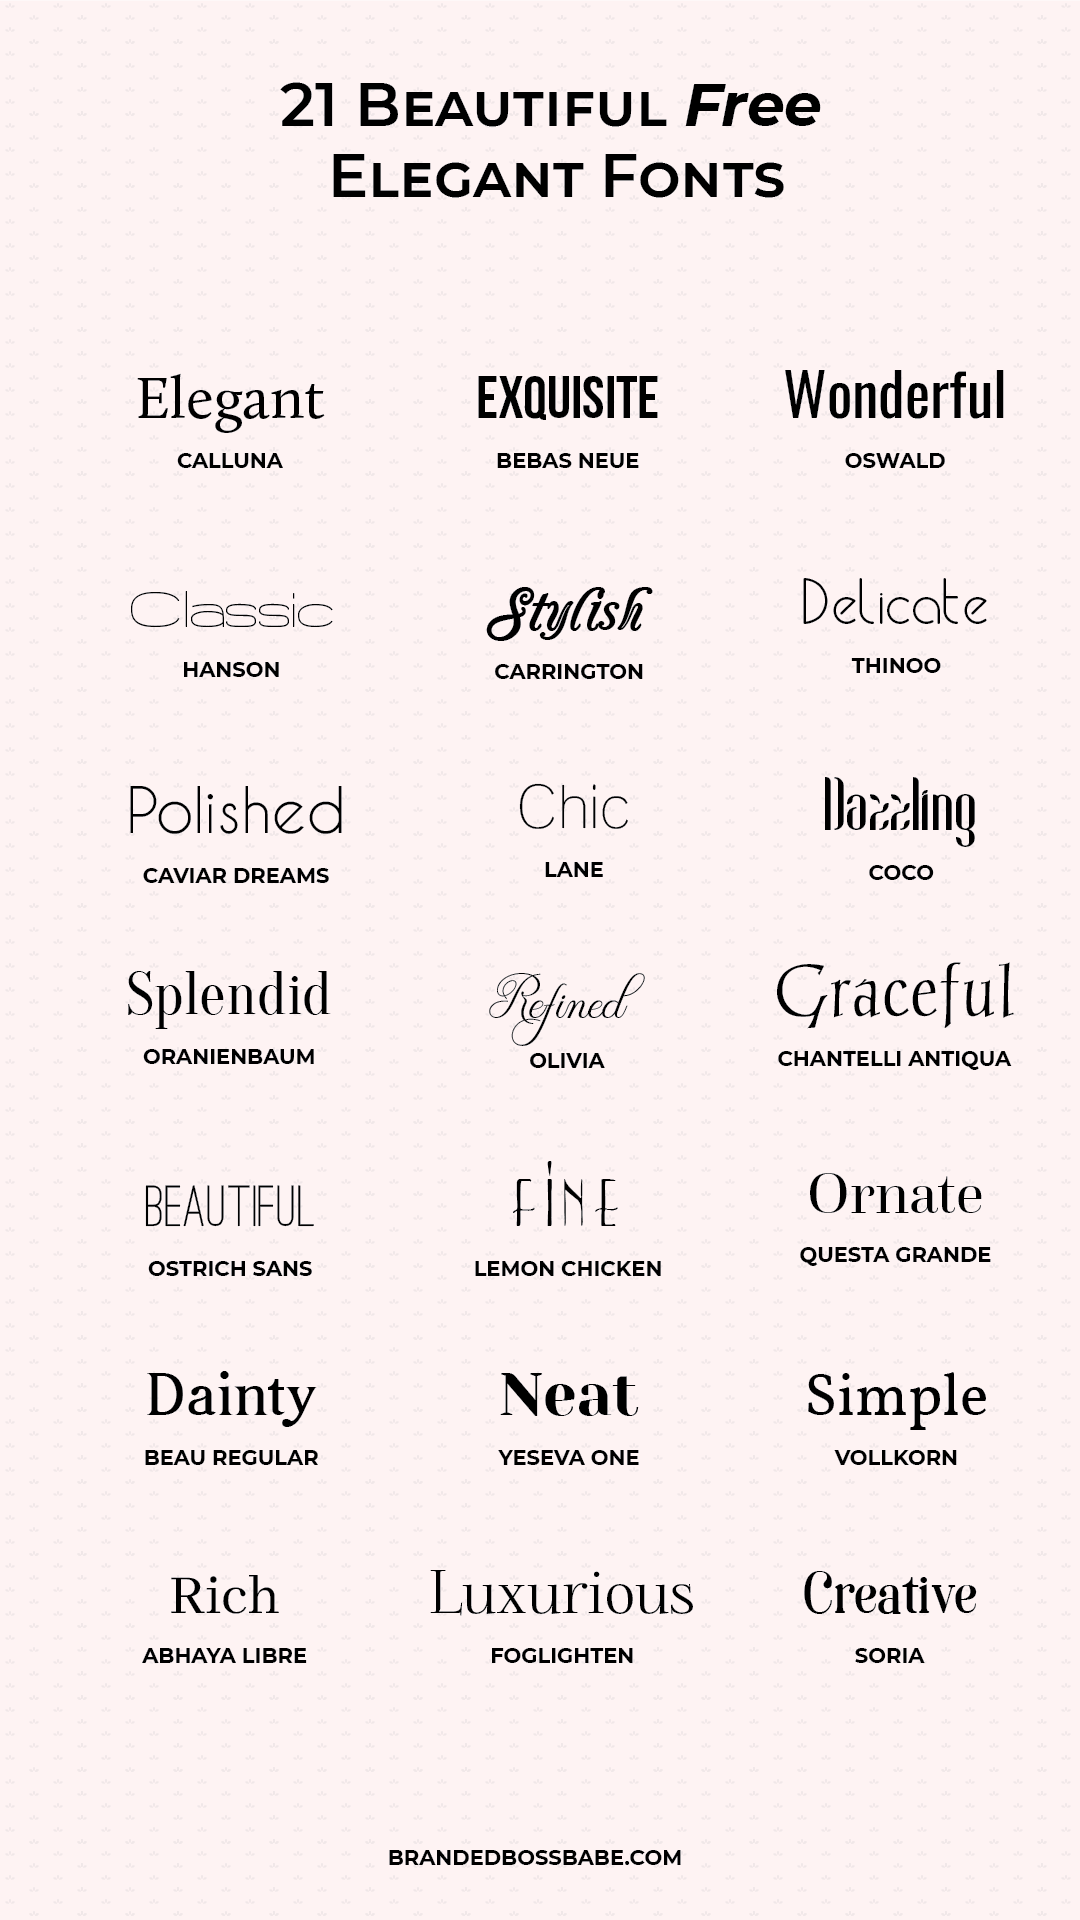 Download these 20 beautiful and free elegant fonts for your logo and brand design. #branding #logodesign #fonts #brandedbossbabe